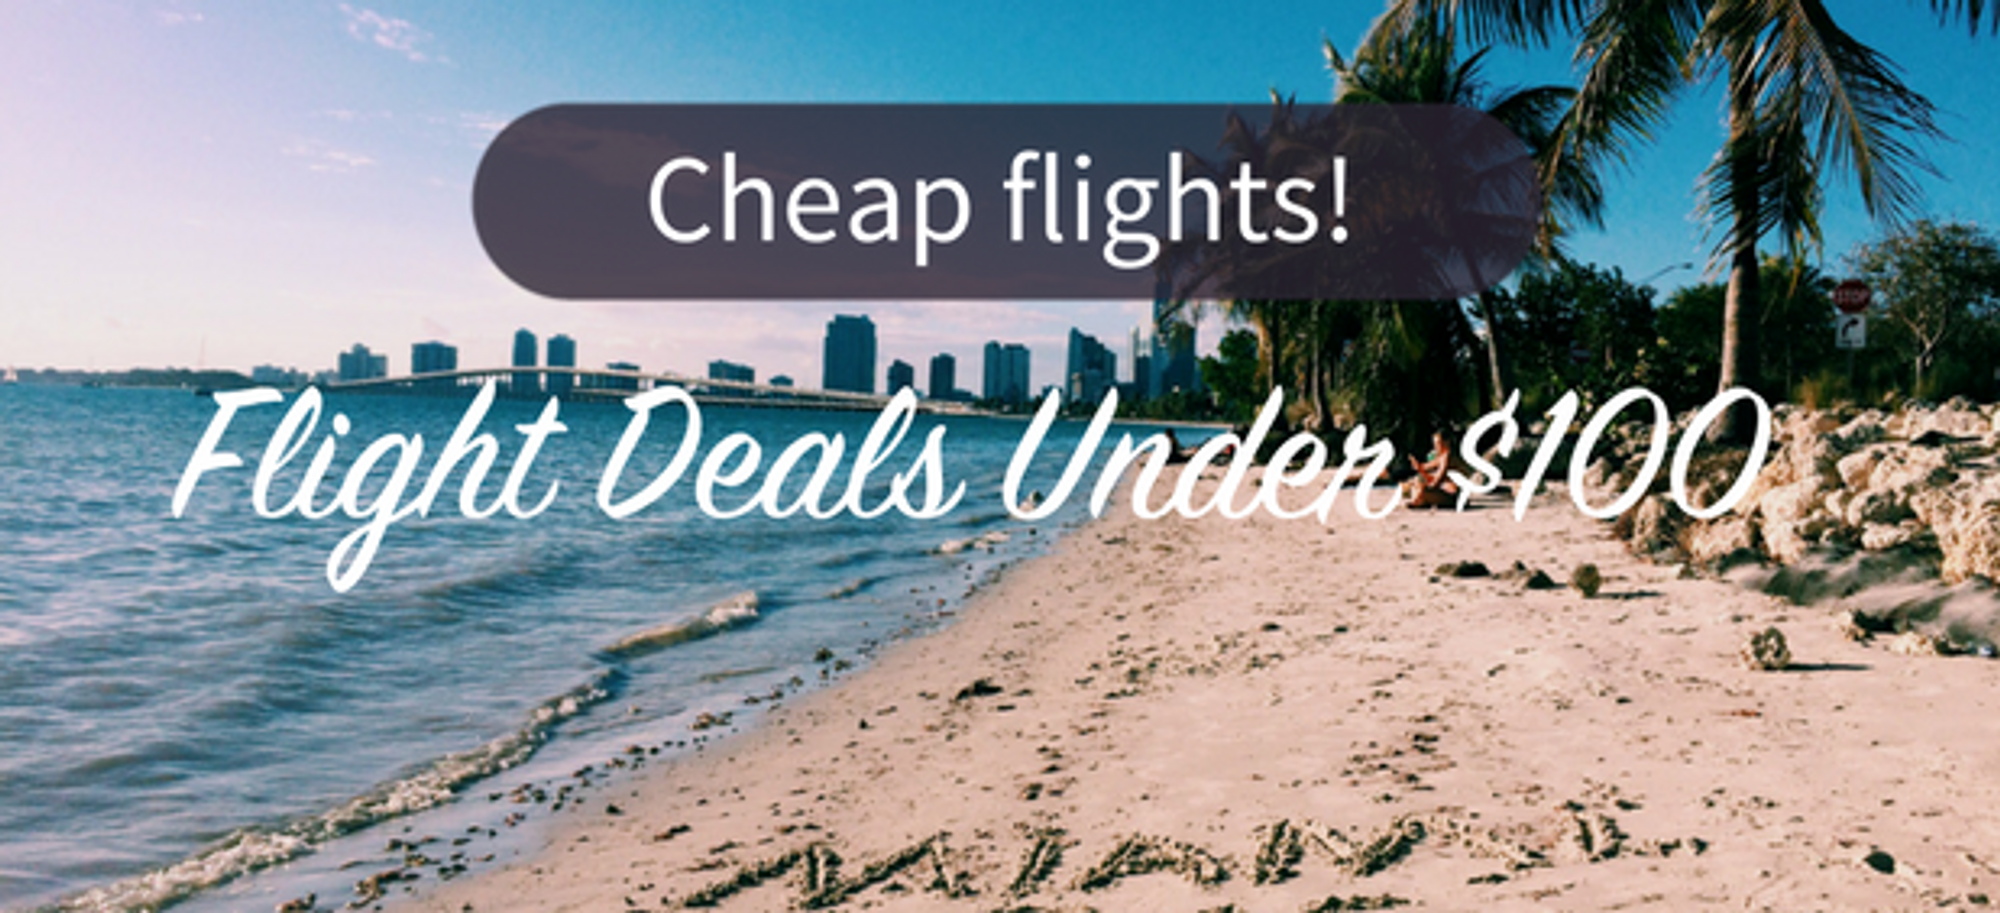 For the best strategy, search flights from a wide variety of reofeskofu.tk Rental Cars· Compare Top Travel Sites· Hotels Deals· Discount FlightsTypes: Luxury Hotels, All-Inclusive Resorts, Family Hotels.